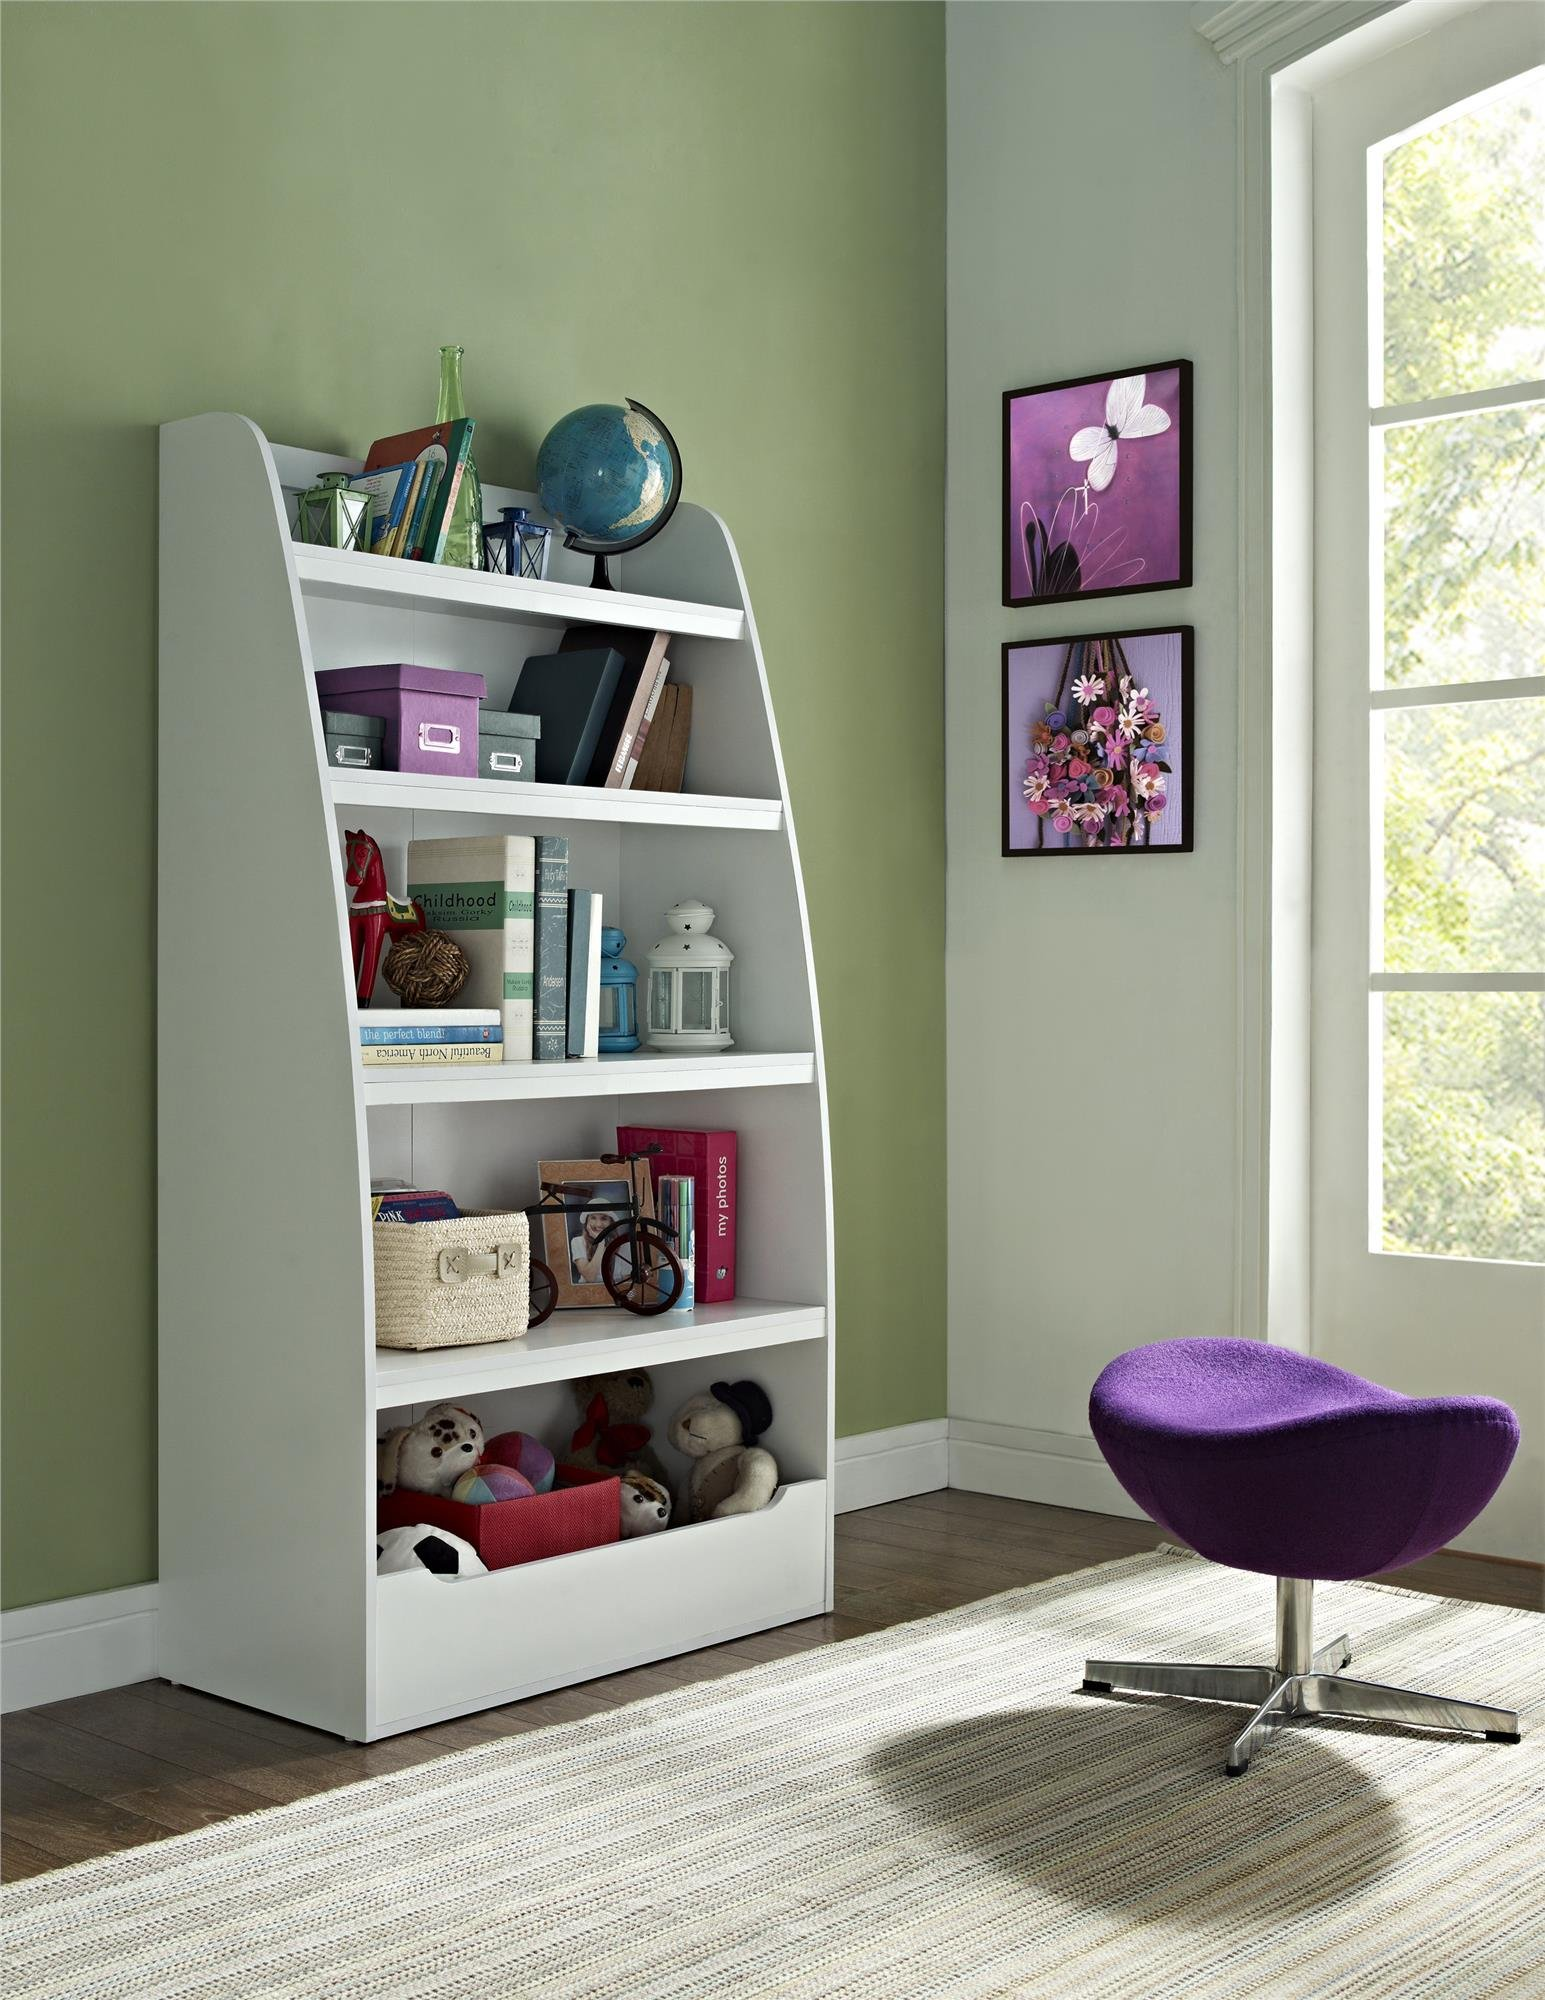 Ameriwood Home Hazel Kids' 4 Shelf Bookcase, White by Ameriwood Home (Image #1)